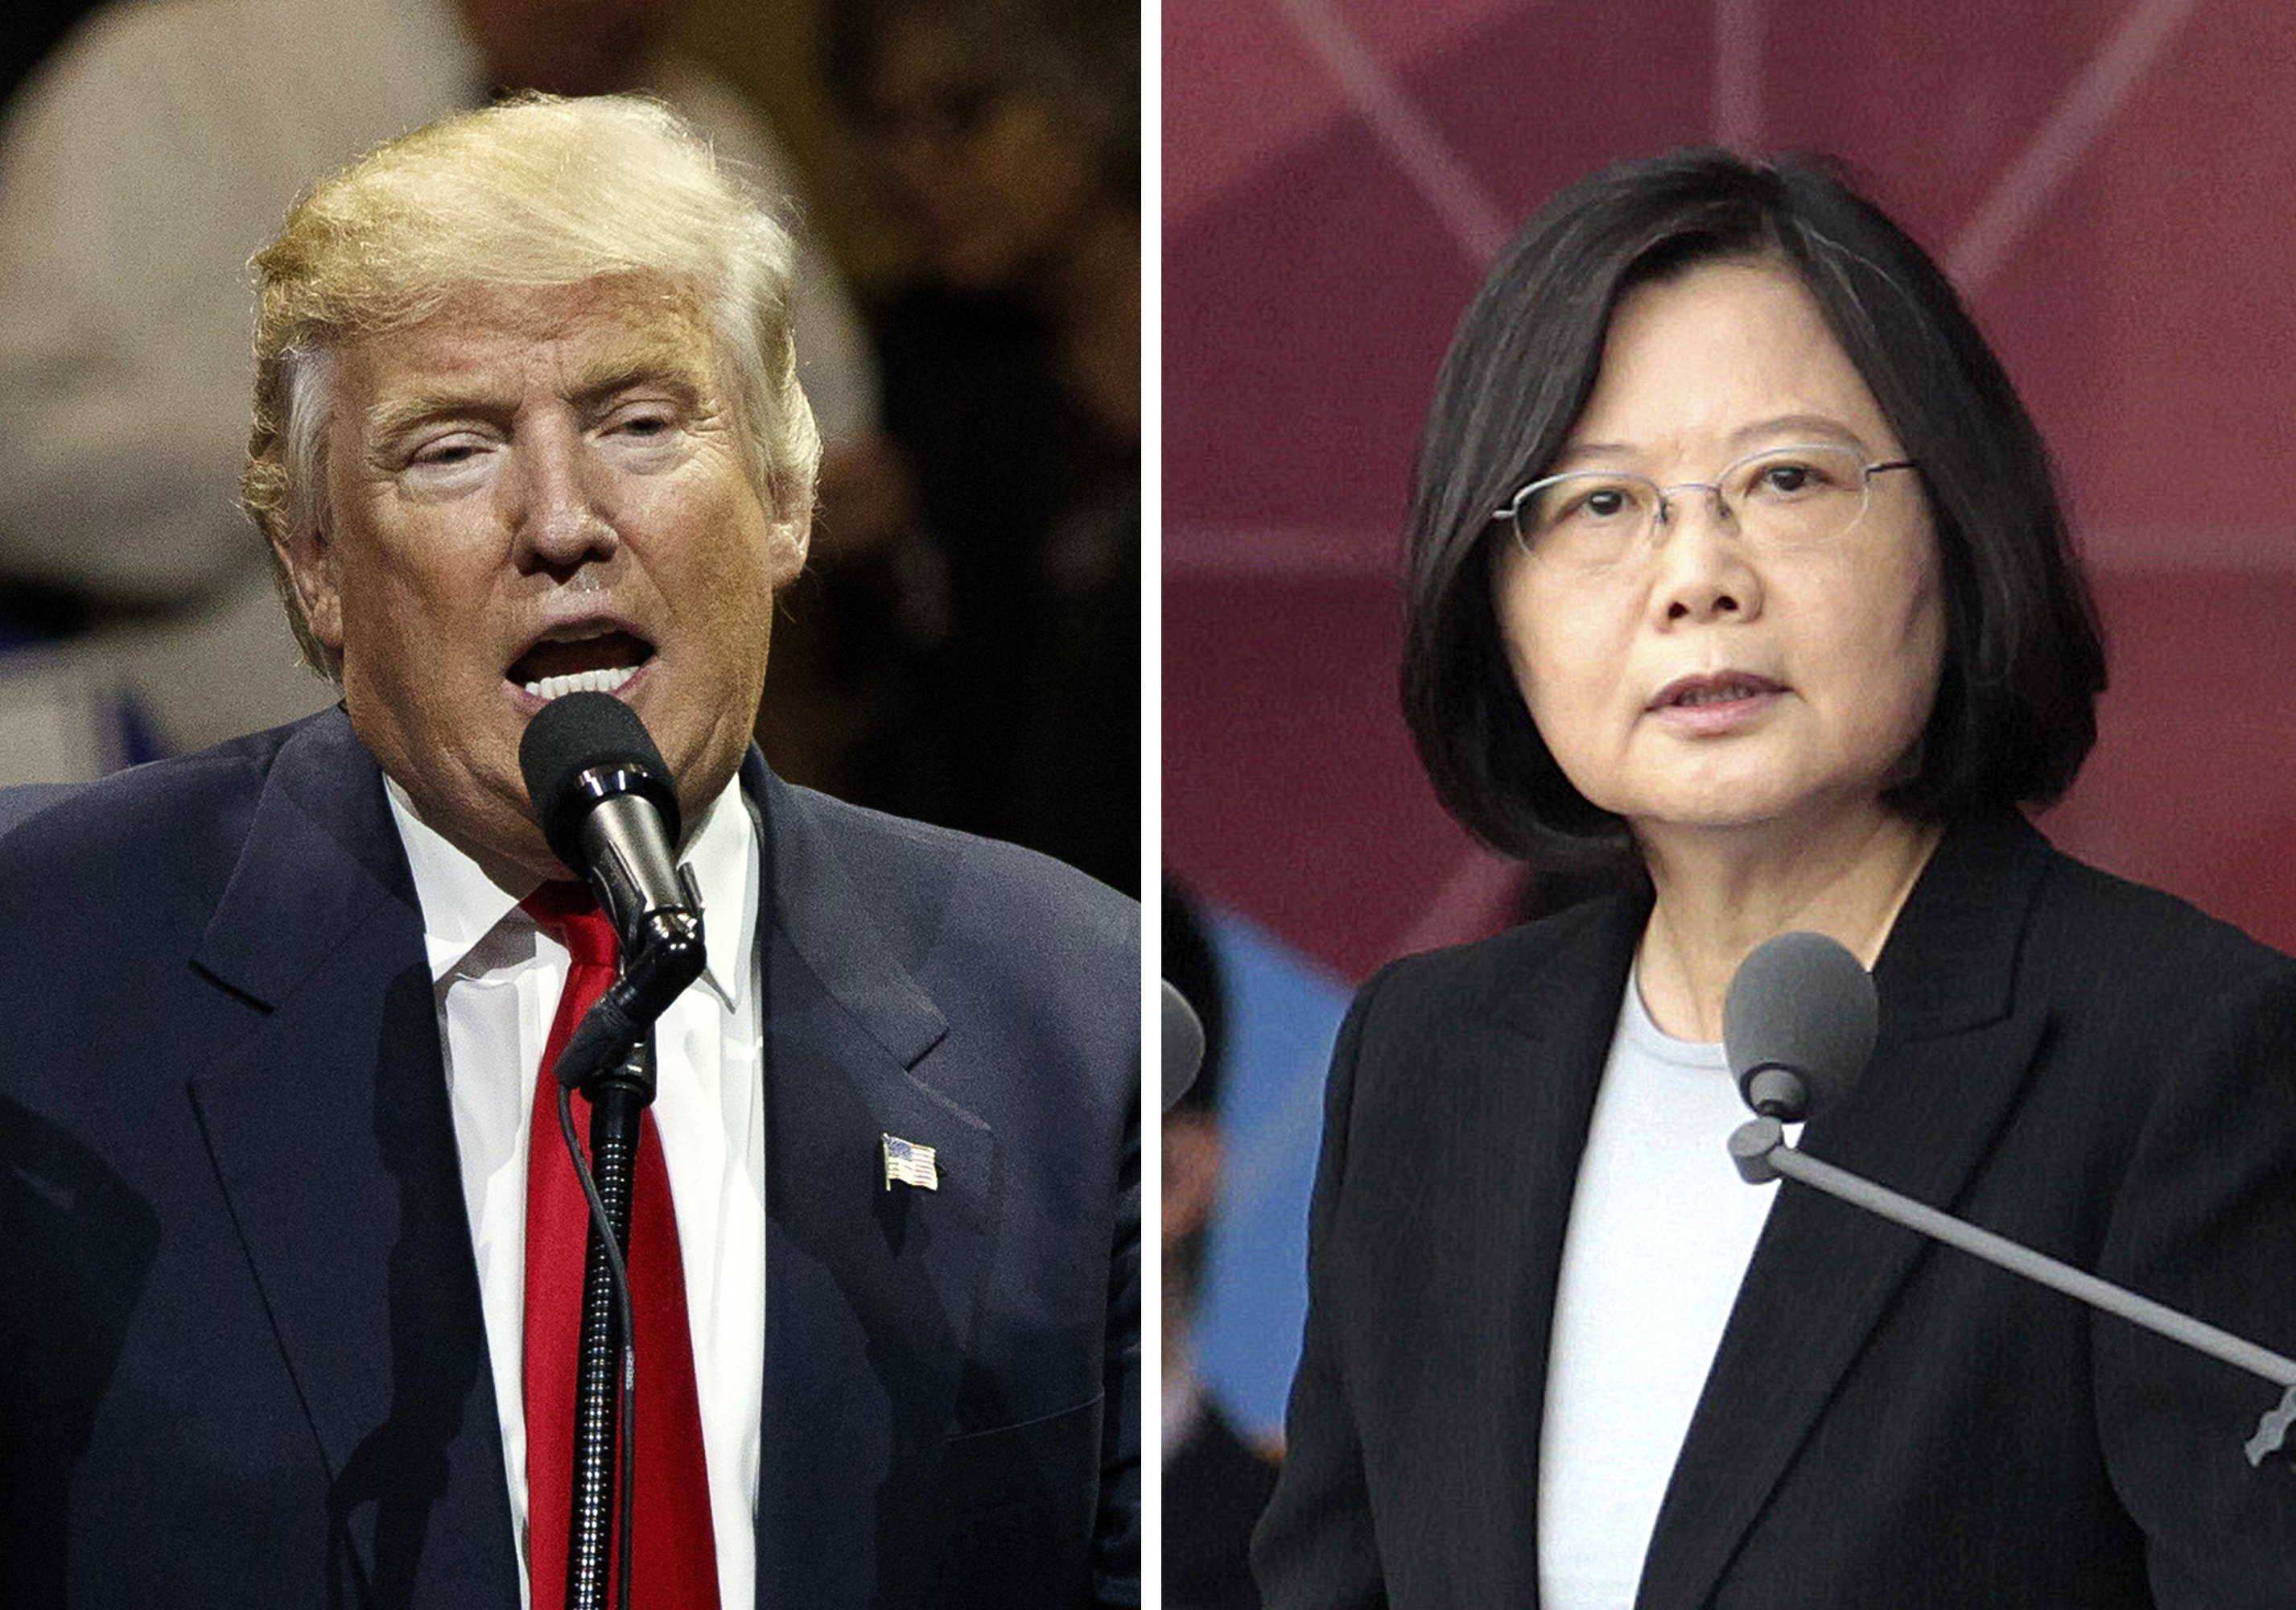 China says Trump's Taiwan comments cause 'serious concern'